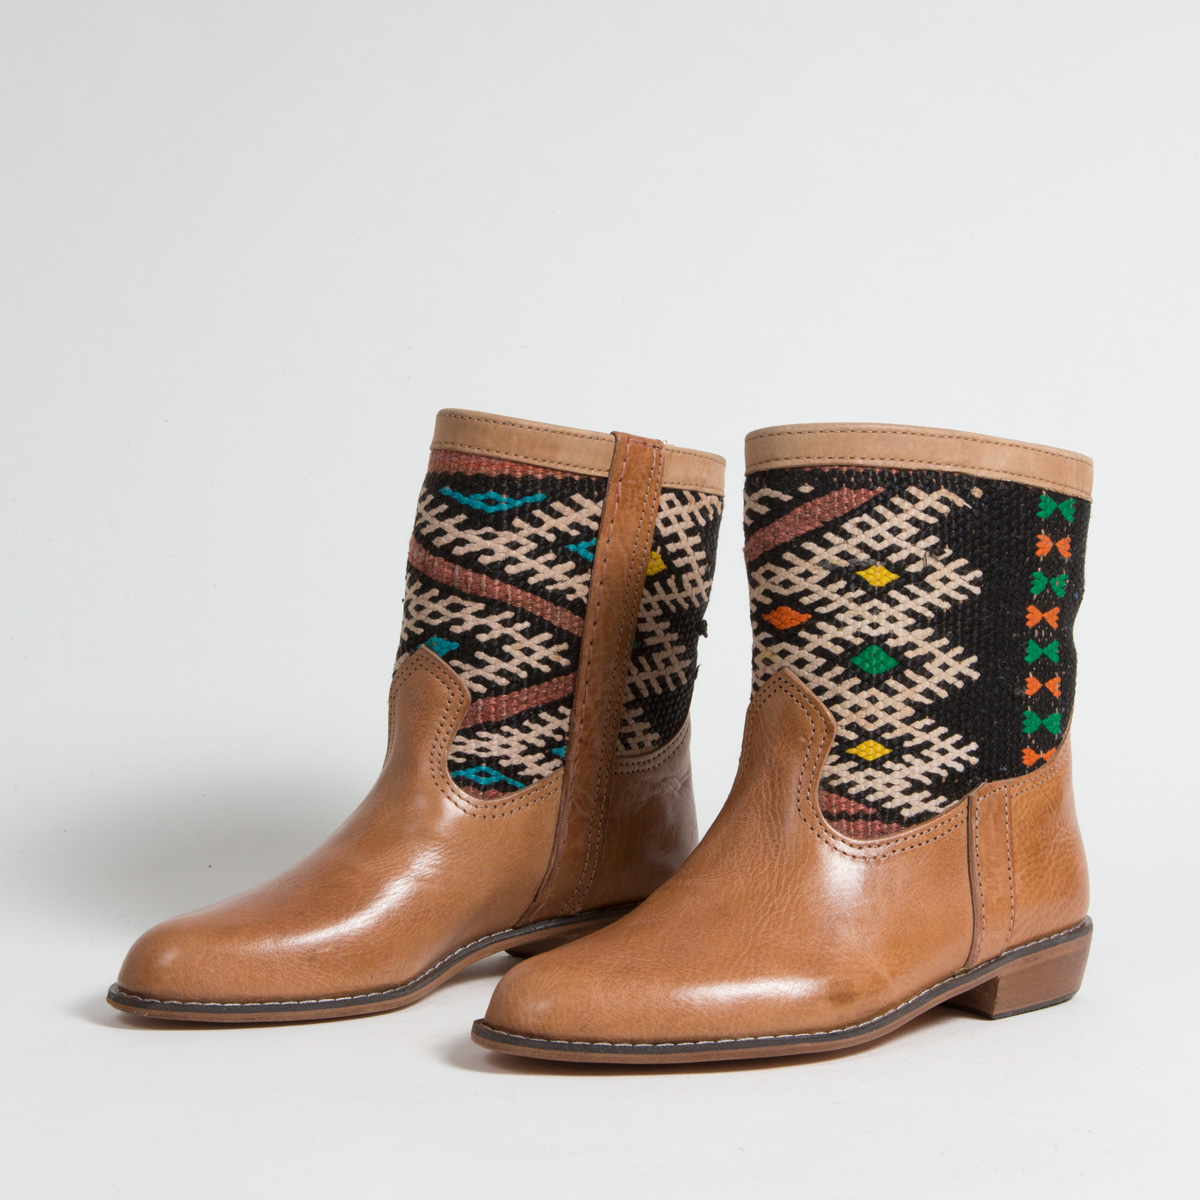 Bottines Kilim - images/kilim/bottines/loc5-01-39-kilim-artisanat-cuir-ethnique-marocaine-bottine-femme-s.jpg